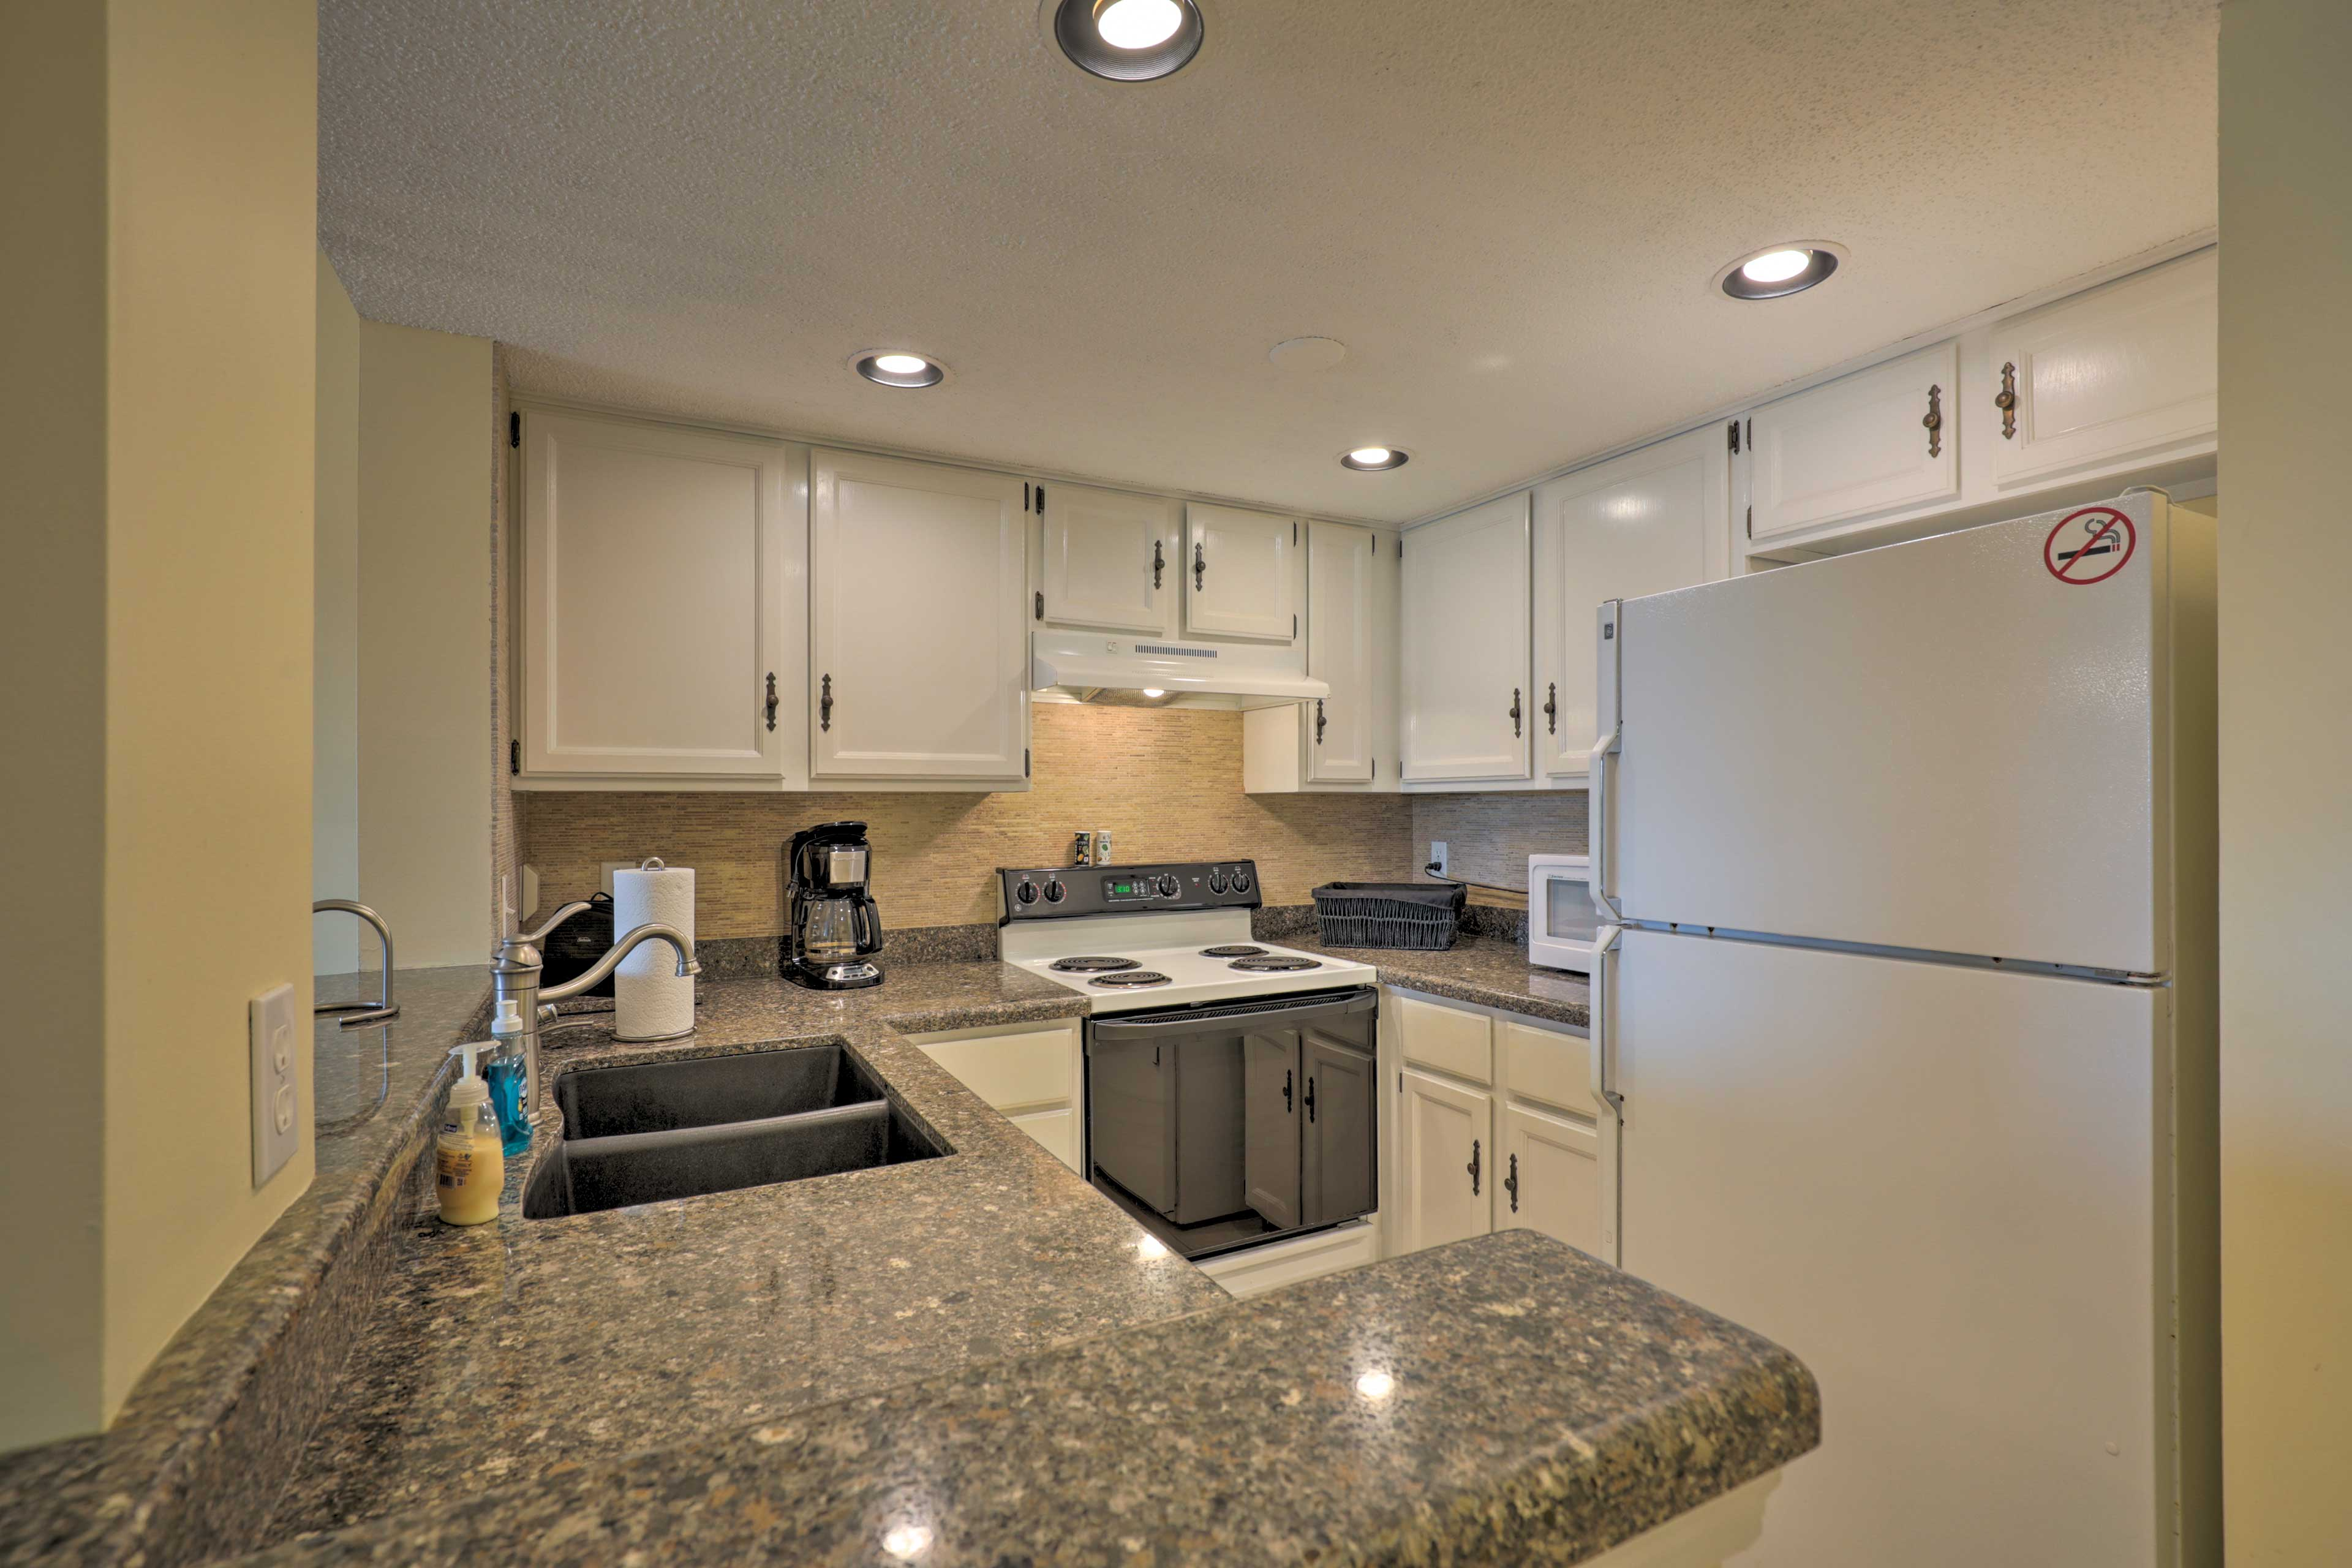 The fully equipped kitchen features modern appliances and granite countertops.